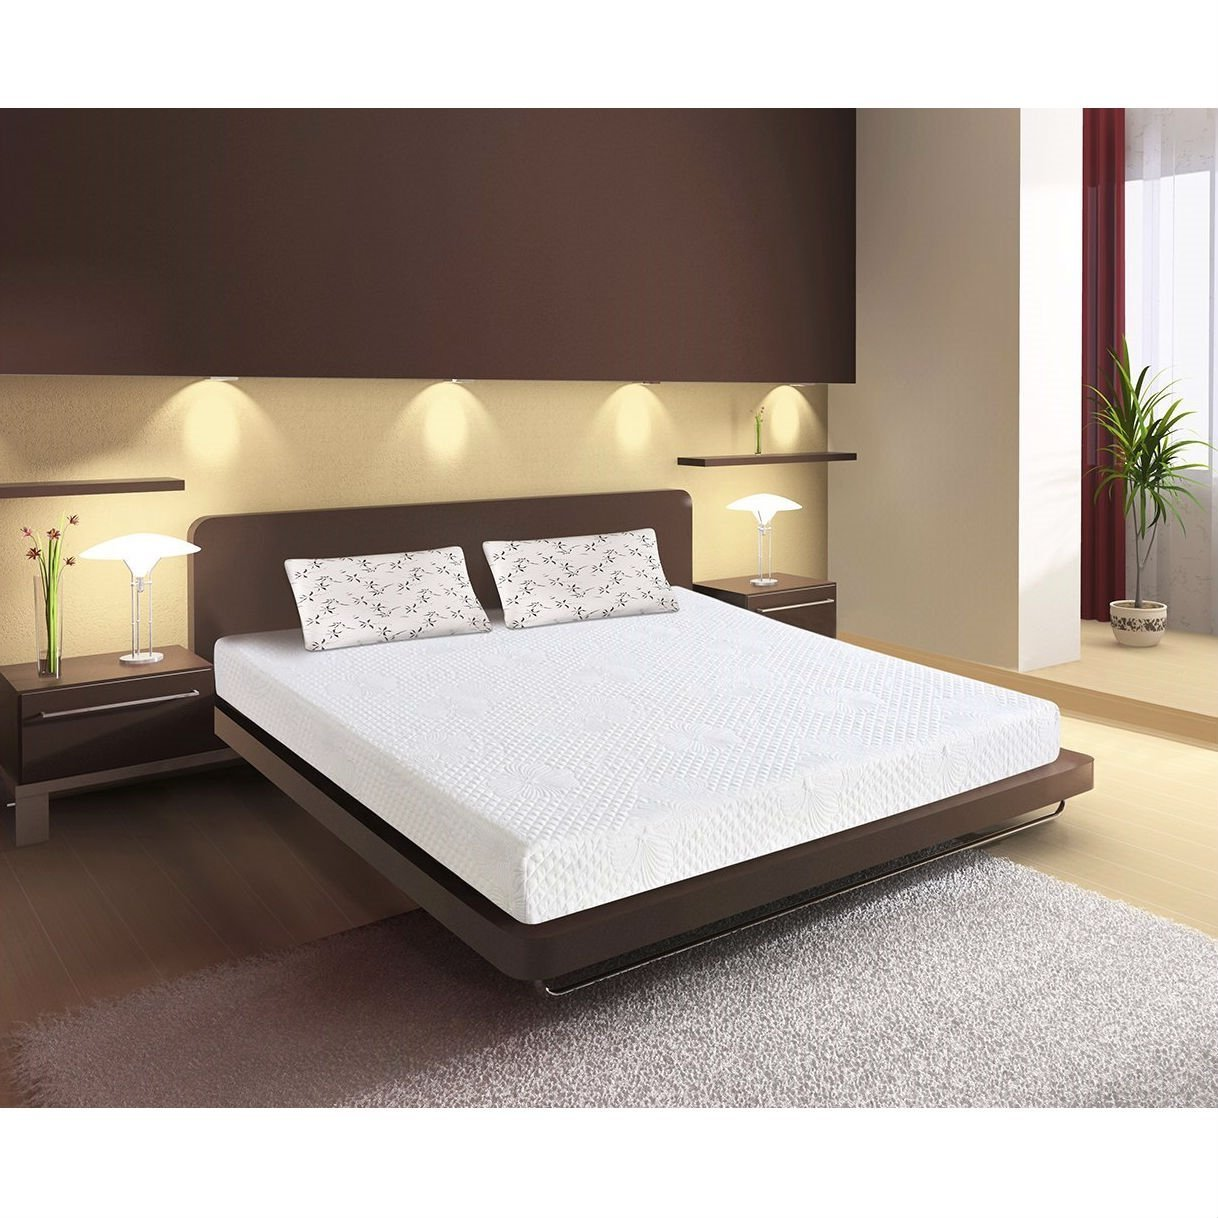 Full size 3layer cushion firm 6inch thick memory foam